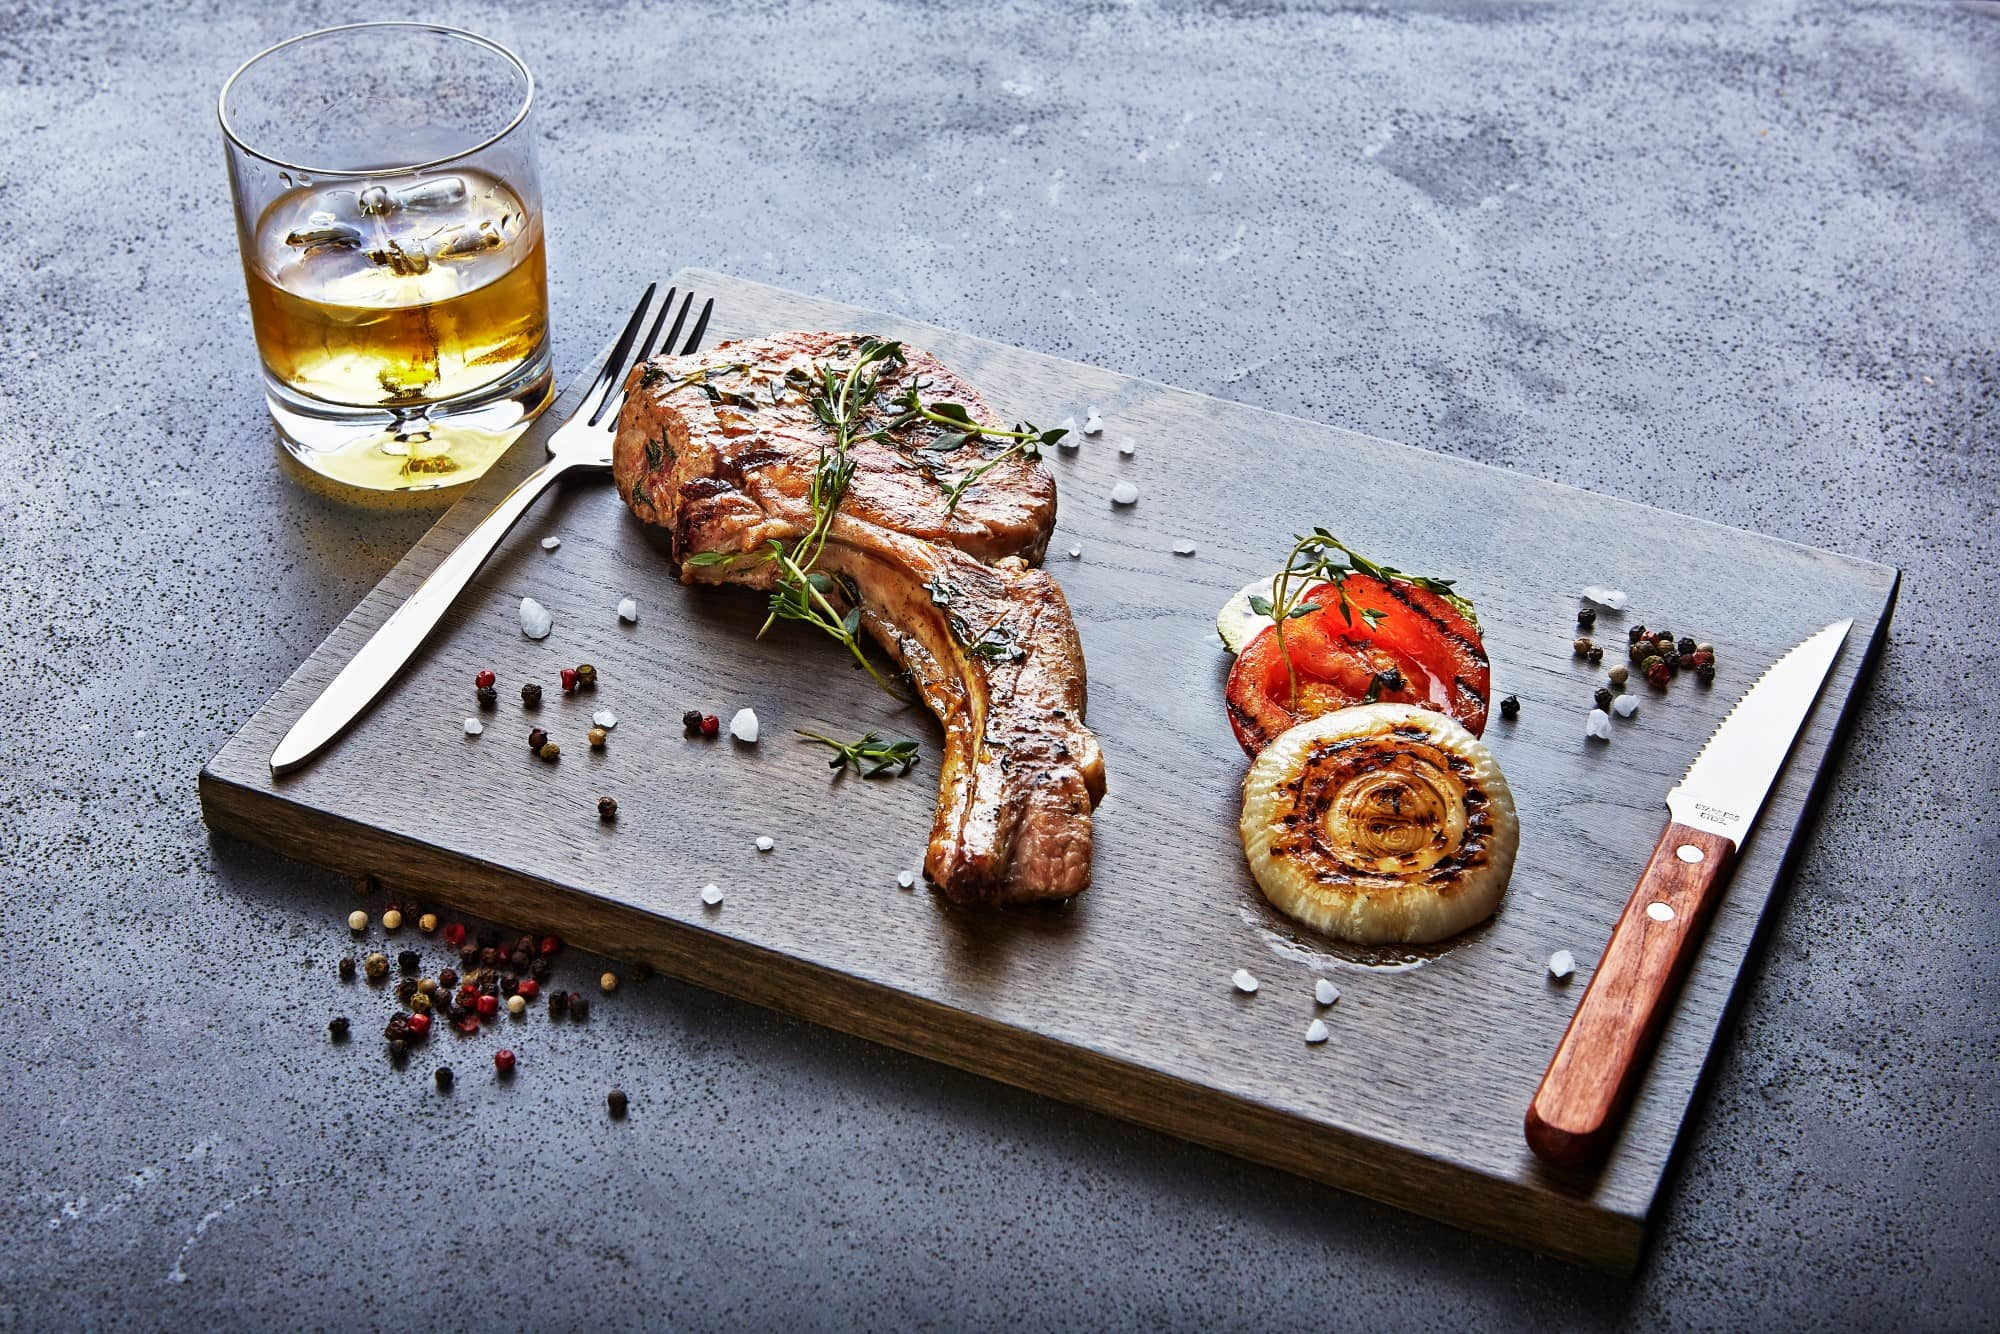 Find out the best food to go with whisky